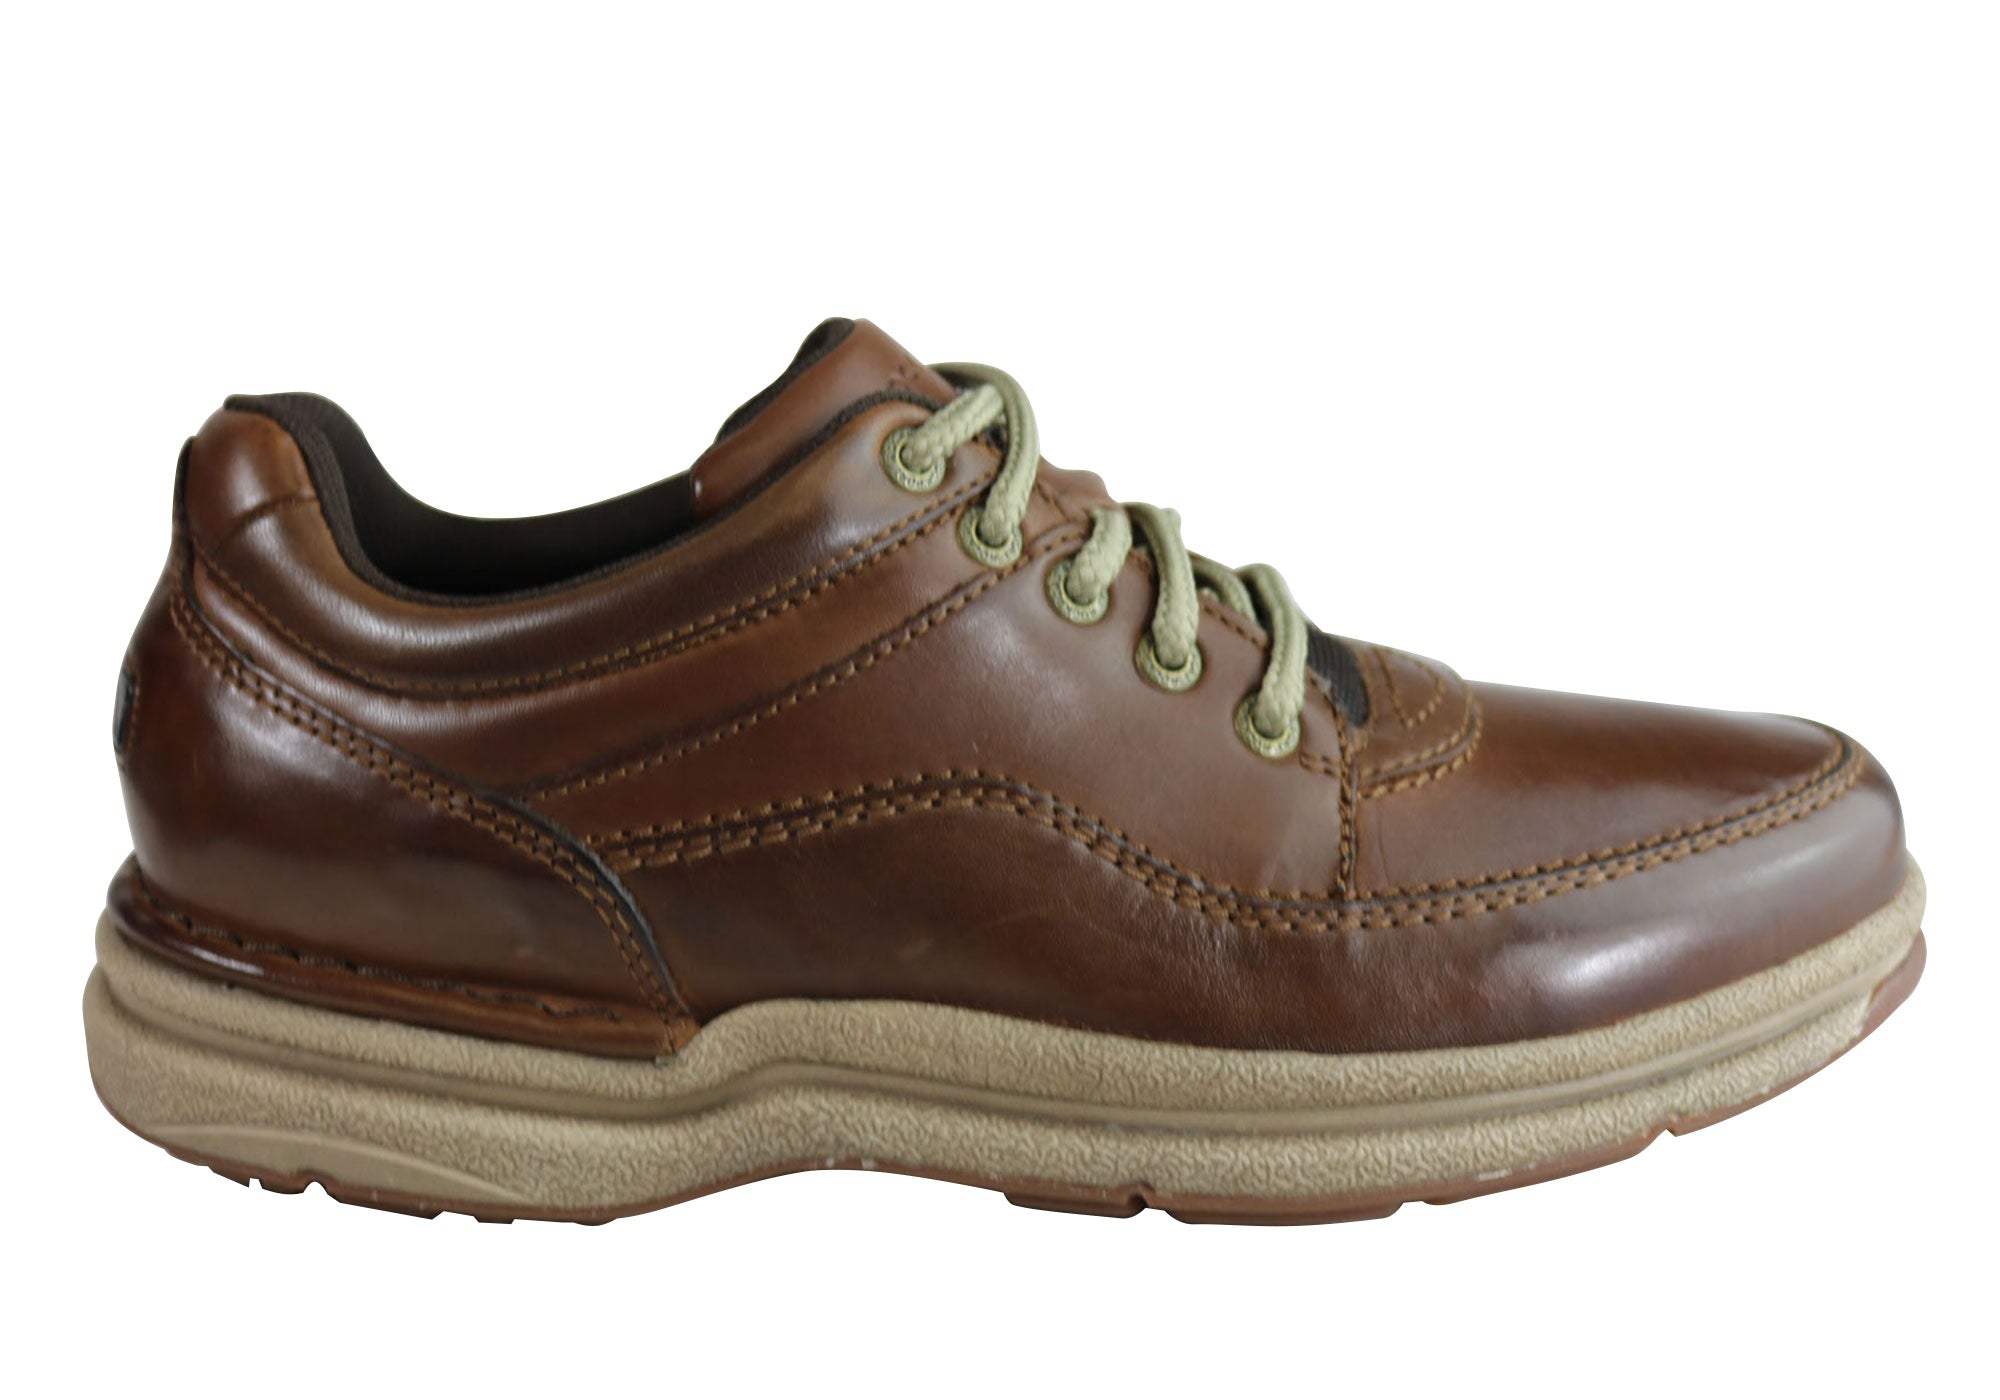 efd0124a9 Rockport World Tour Classic Mens Comfort Wide Fit Walking Shoes ...